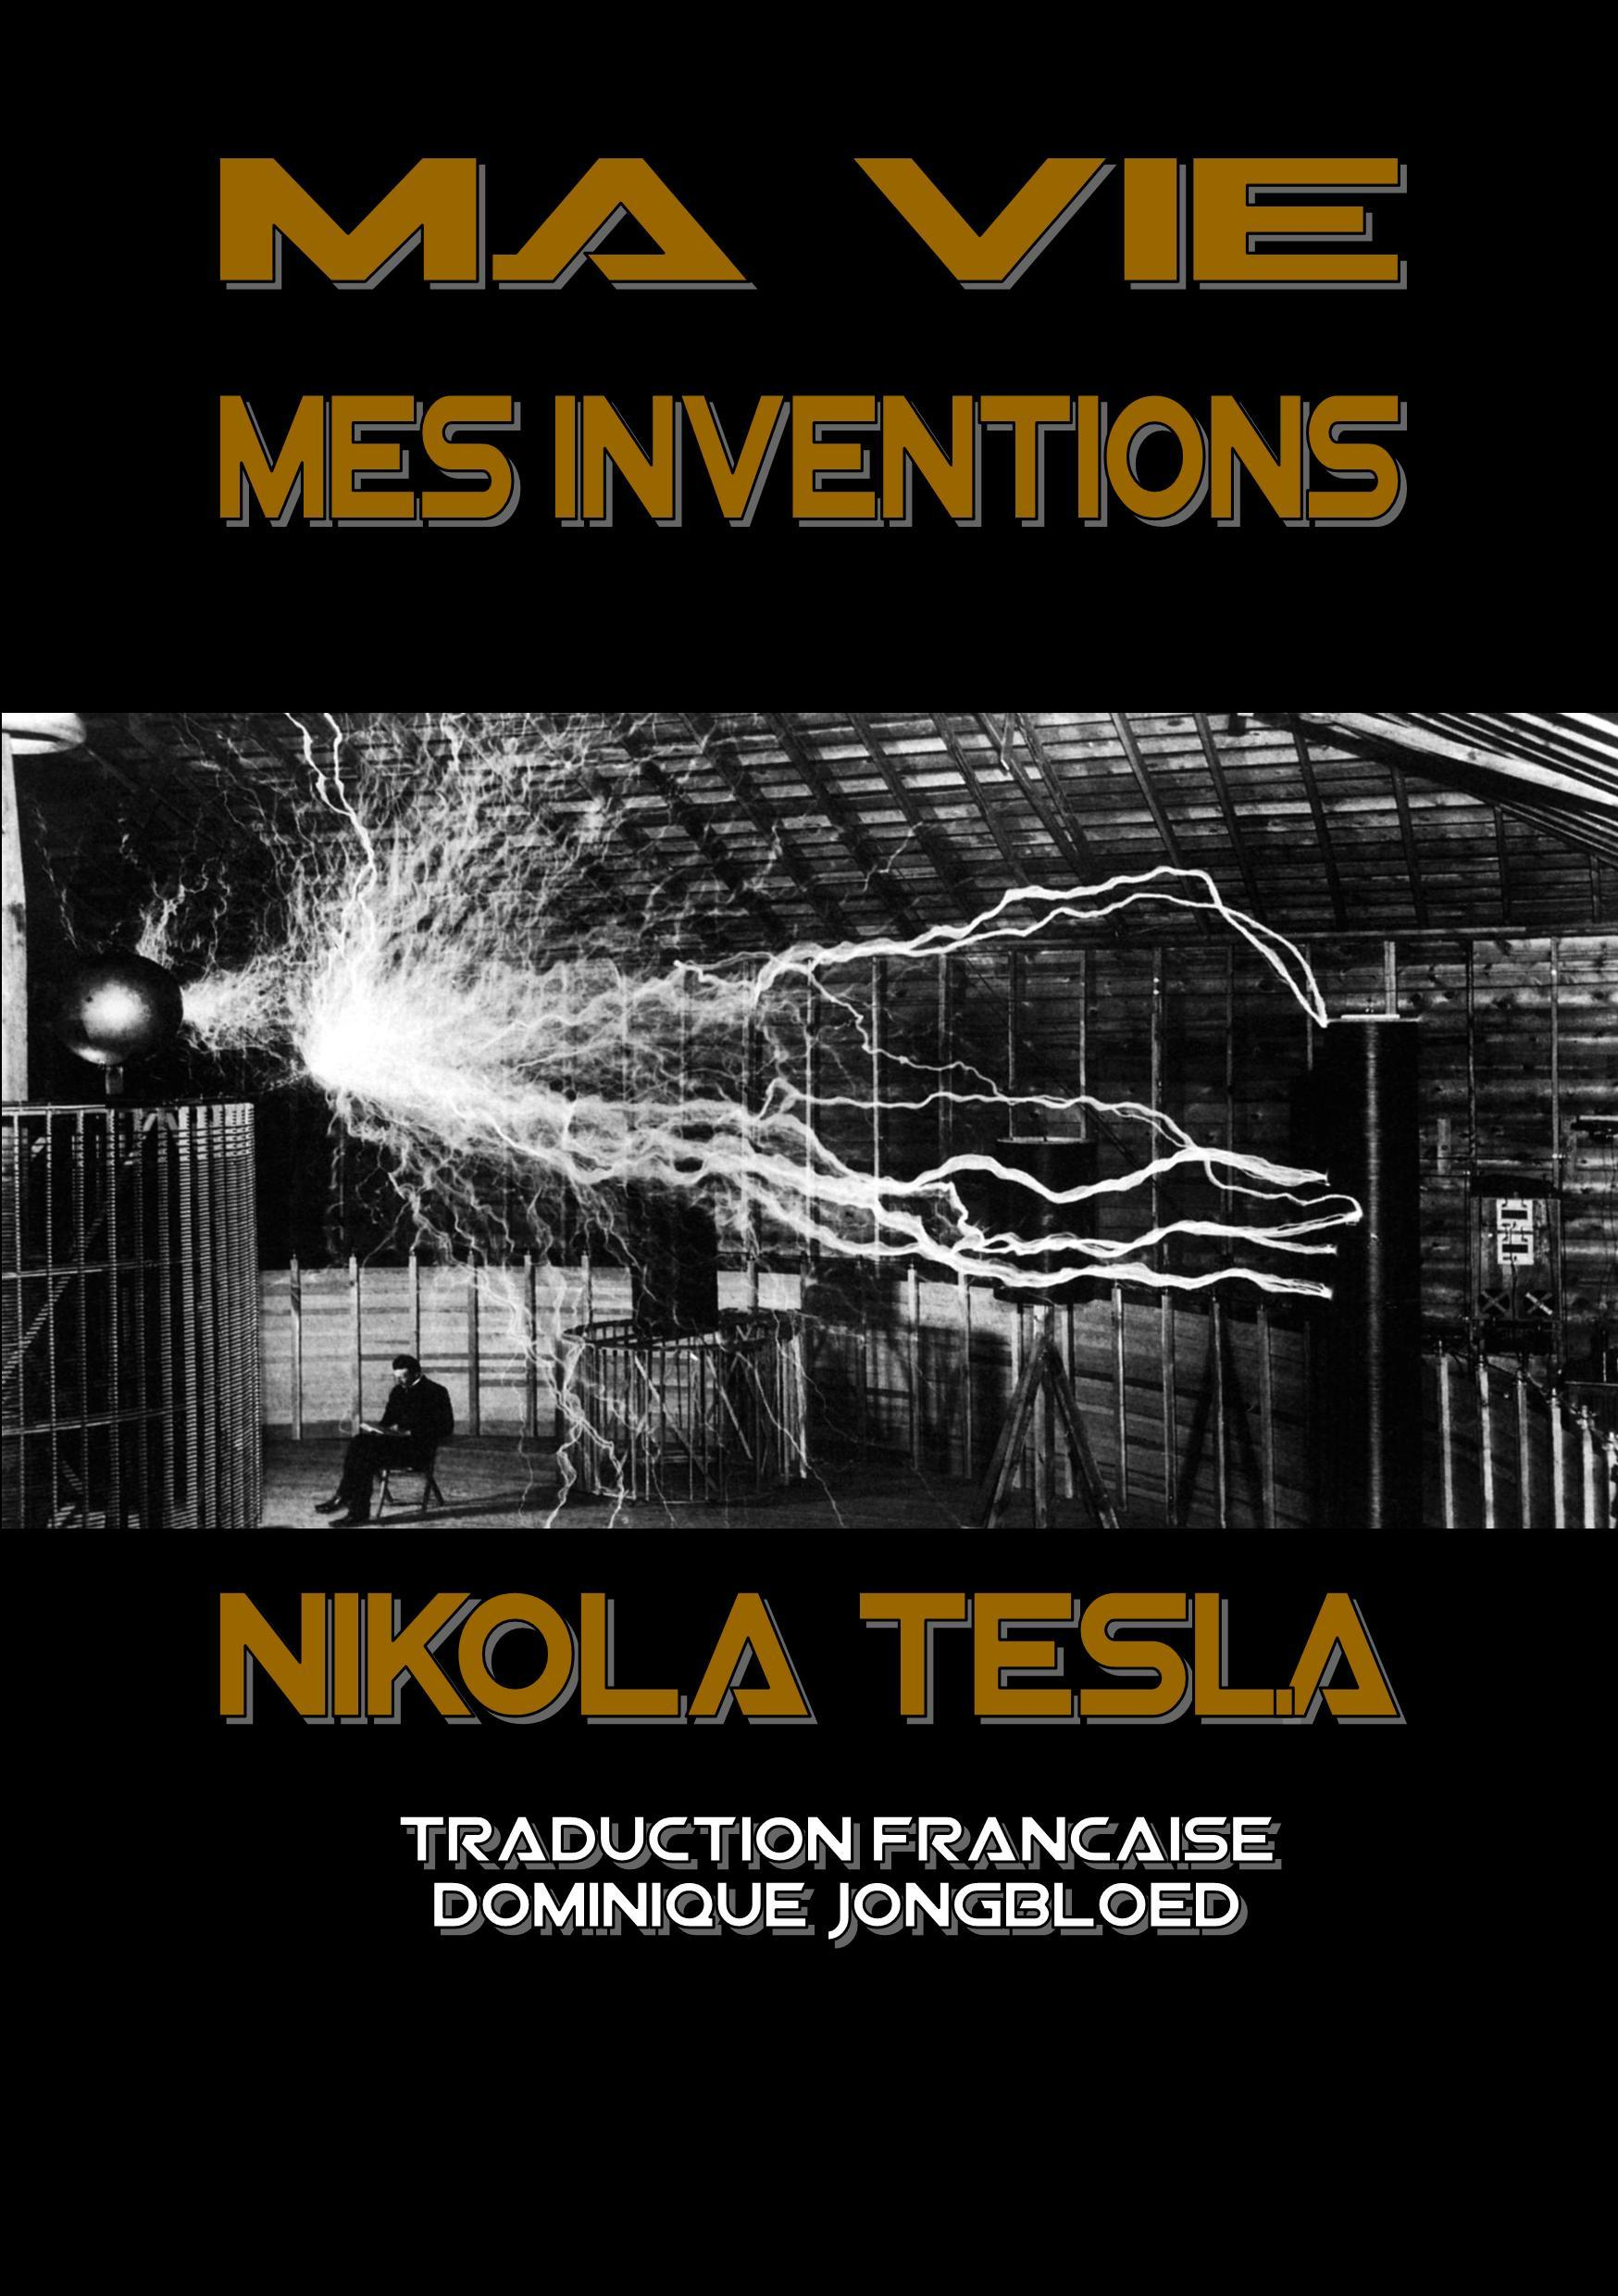 MA VIE MES INVENTIONS